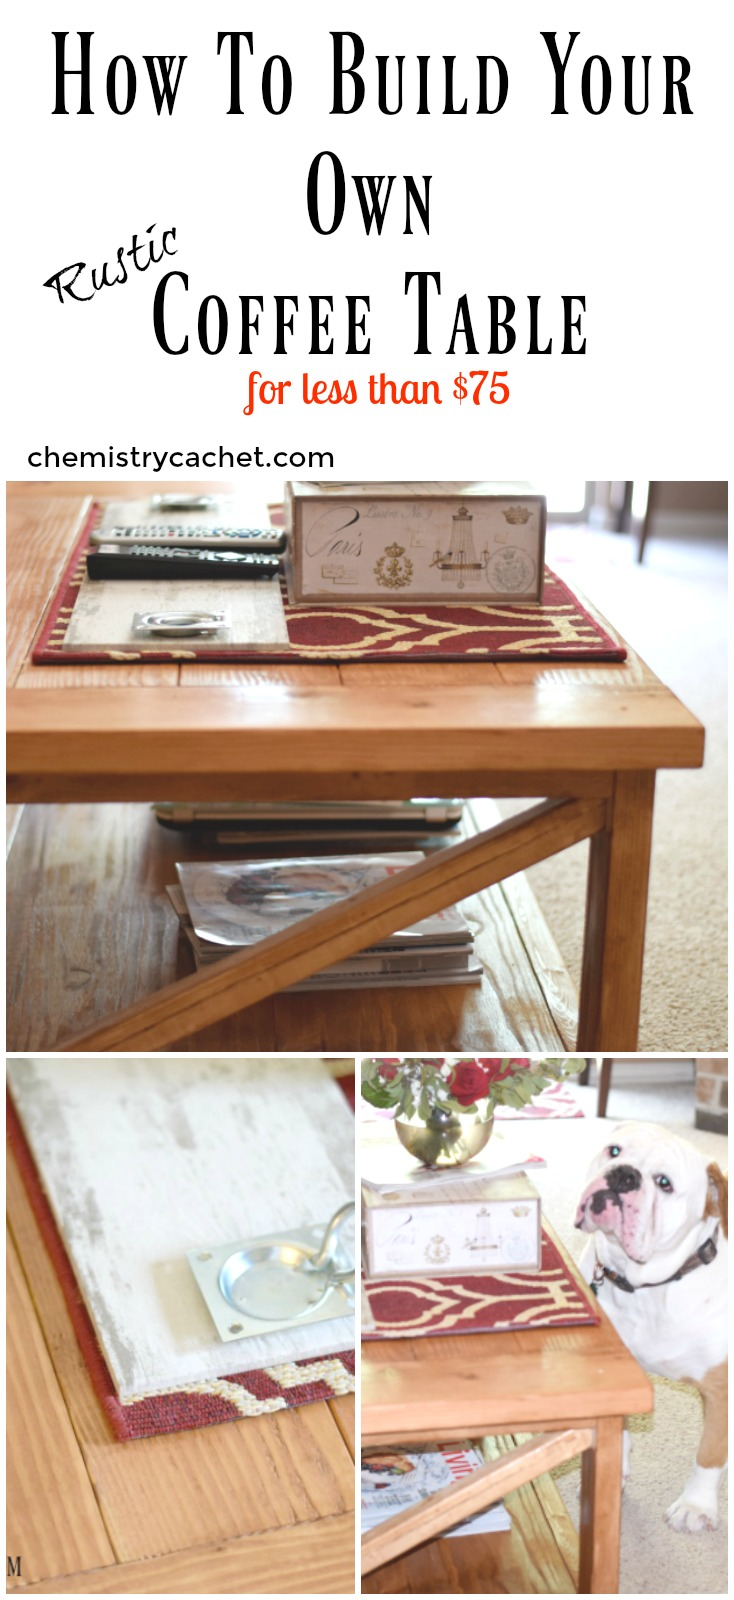 How To Make Your Own Coffee Table – Design Your Own Coffee Table